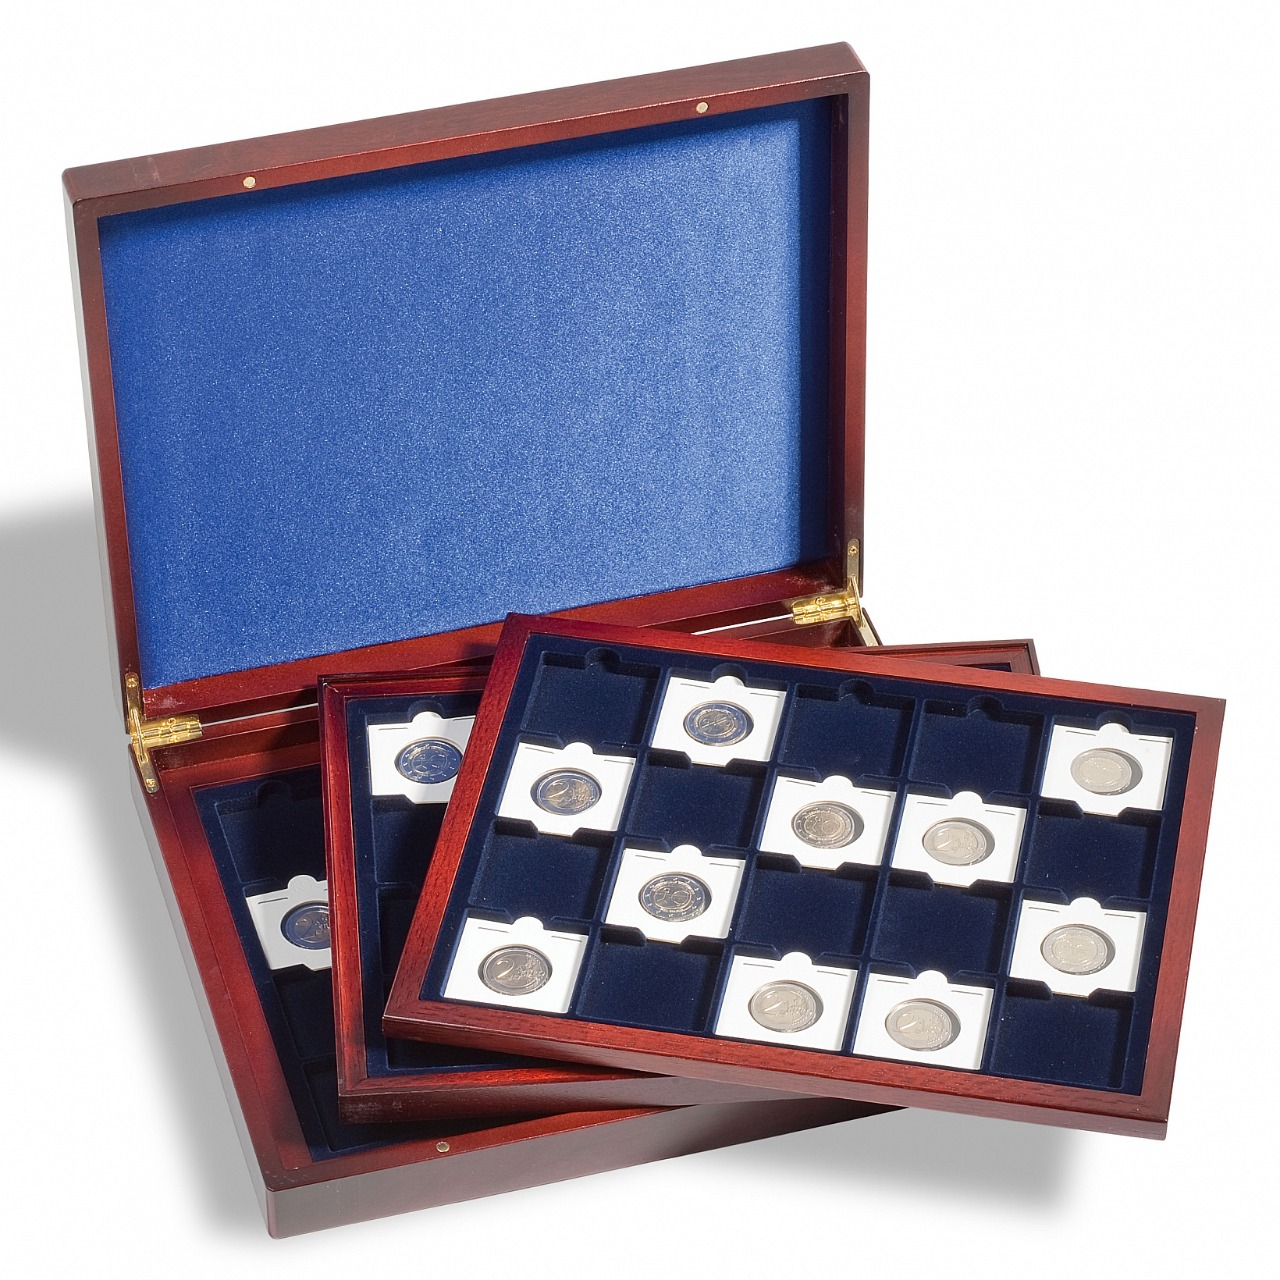 Lighthouse - Luxury Volterra Trio numismatic box for Quadrum each with 20 frames 50 X 50 mm, Blue